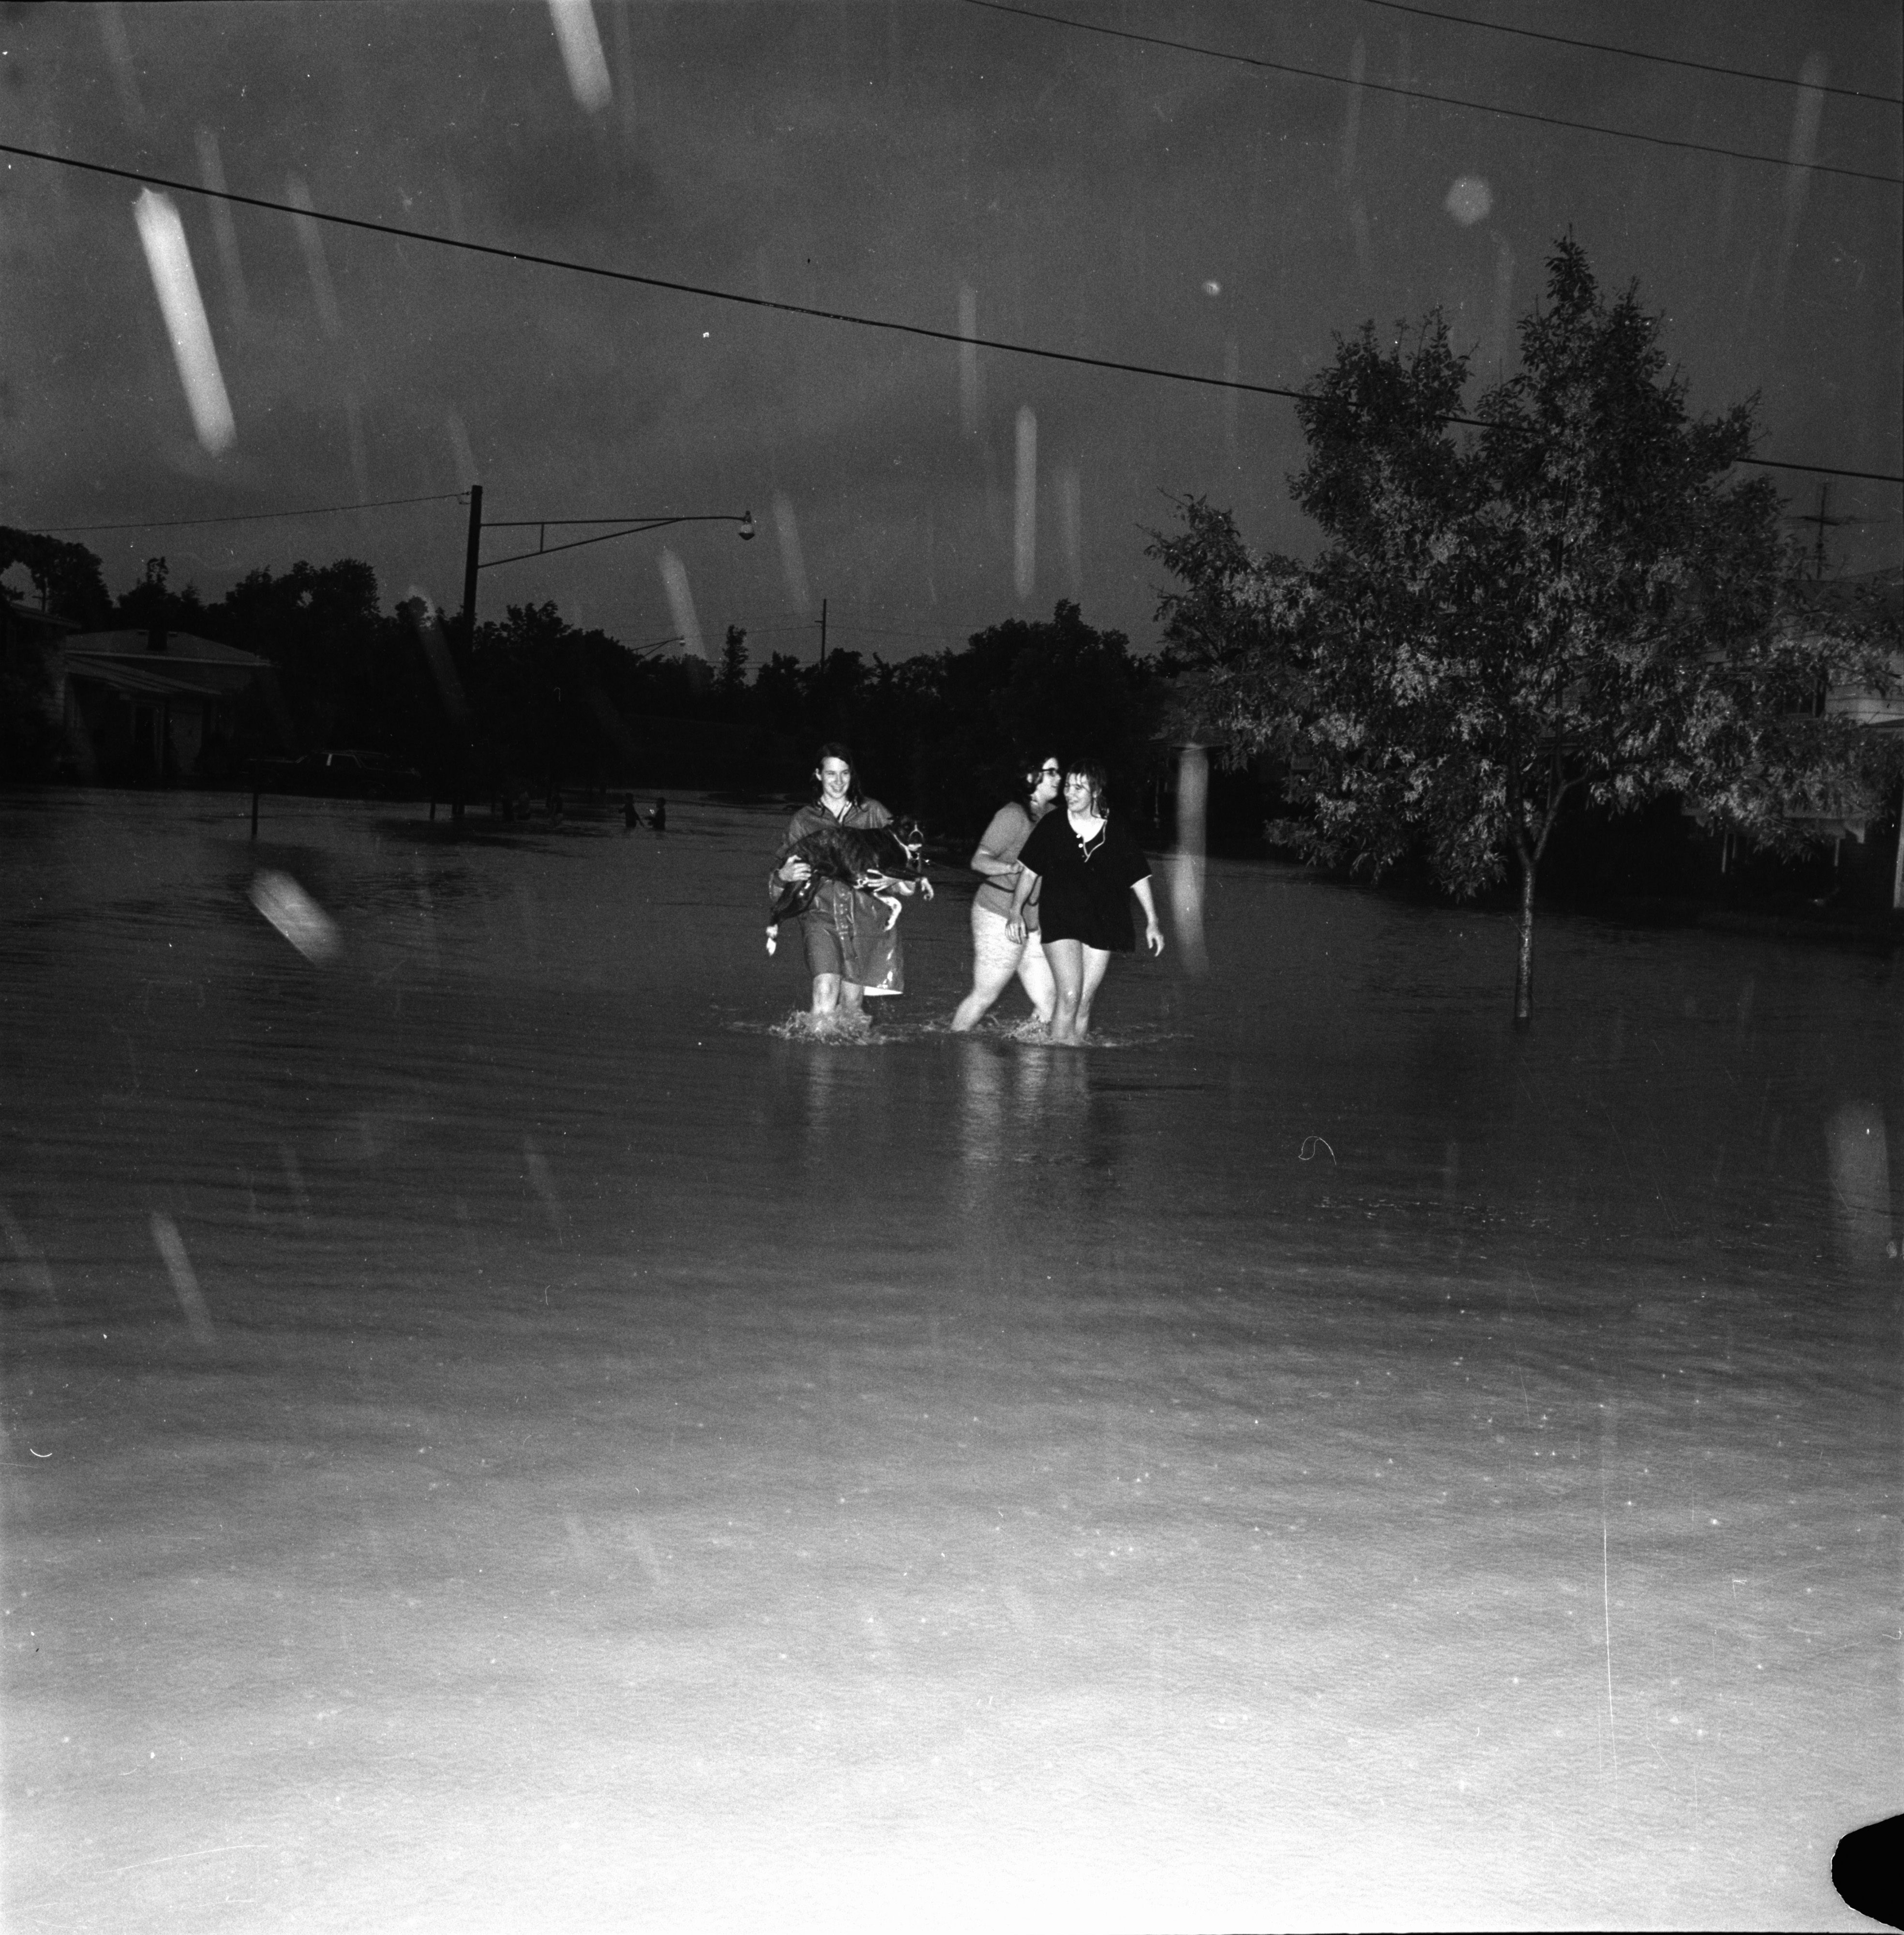 Rescuing a Dog from the Flood, June 1968 image